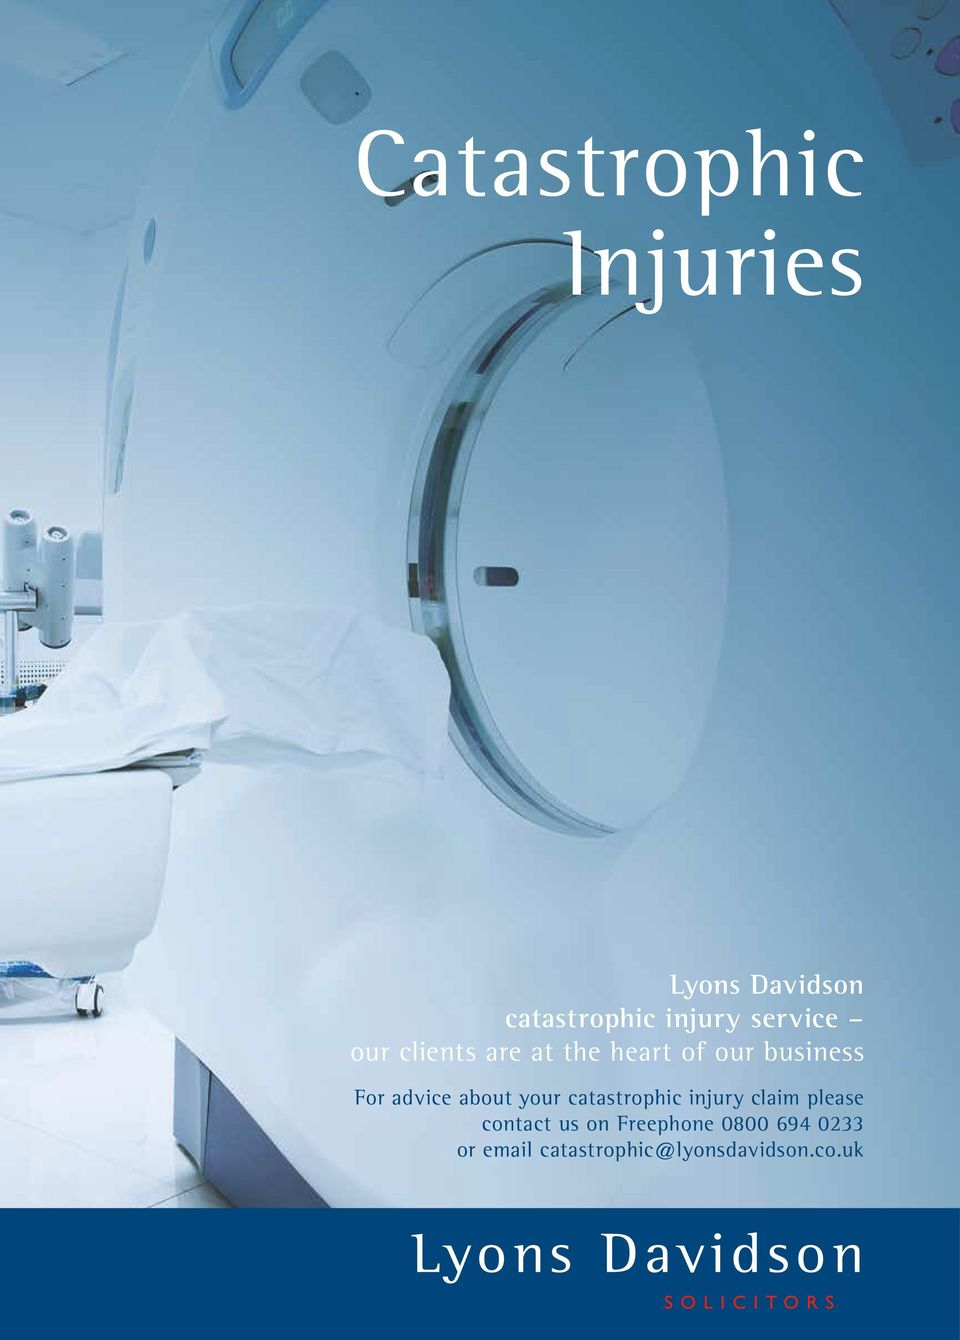 advice about your catastrophic injury claim please contact